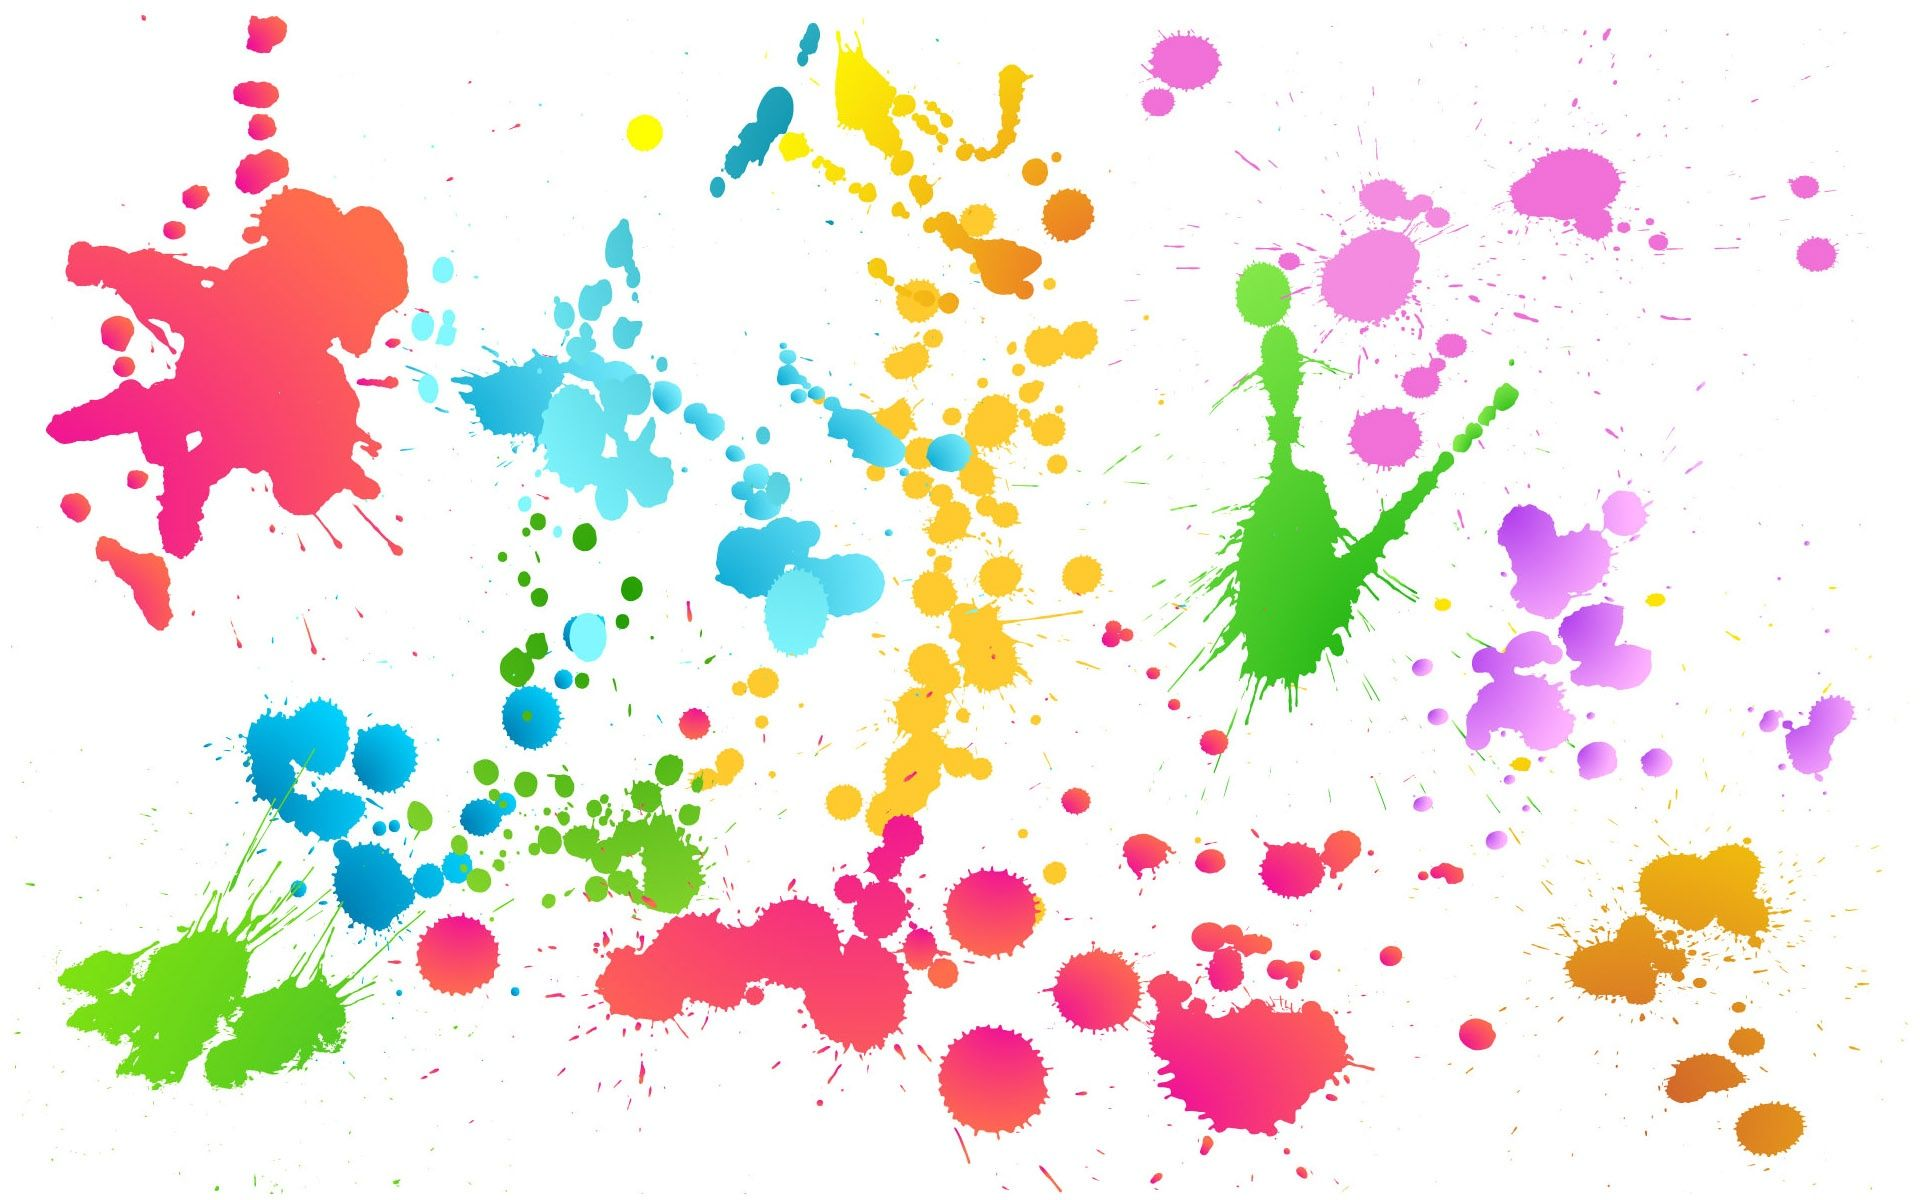 abstract-paint-splash-wallpapers-full-hd-wallpaper-white-background ...